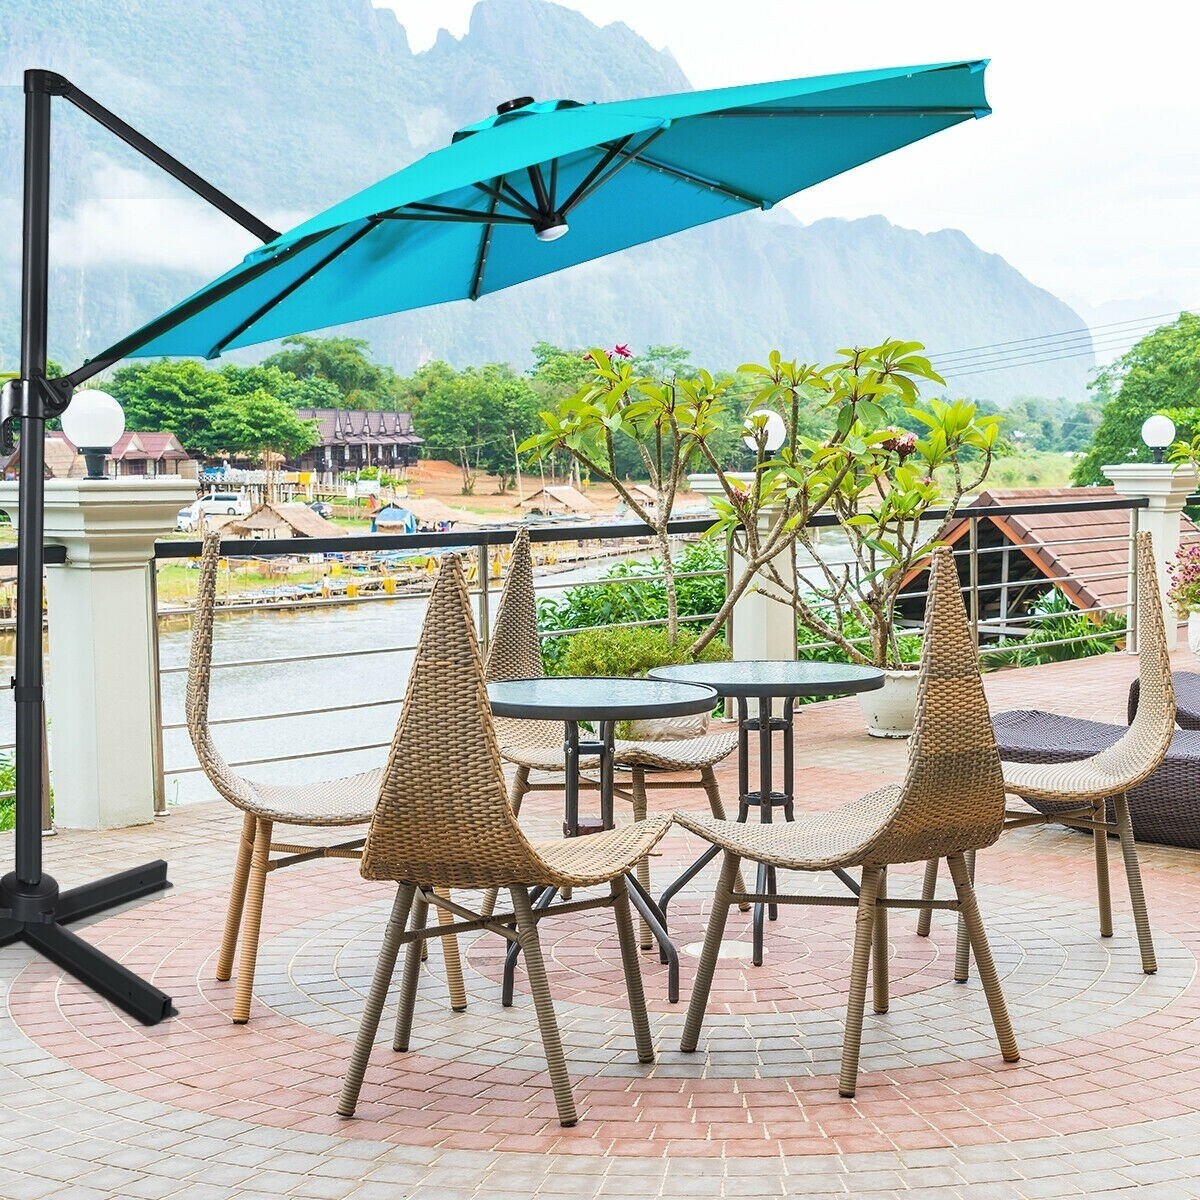 10 ft patio offset cantilever umbrella with solar lights turquoise turquoise 10 x 8 l x h